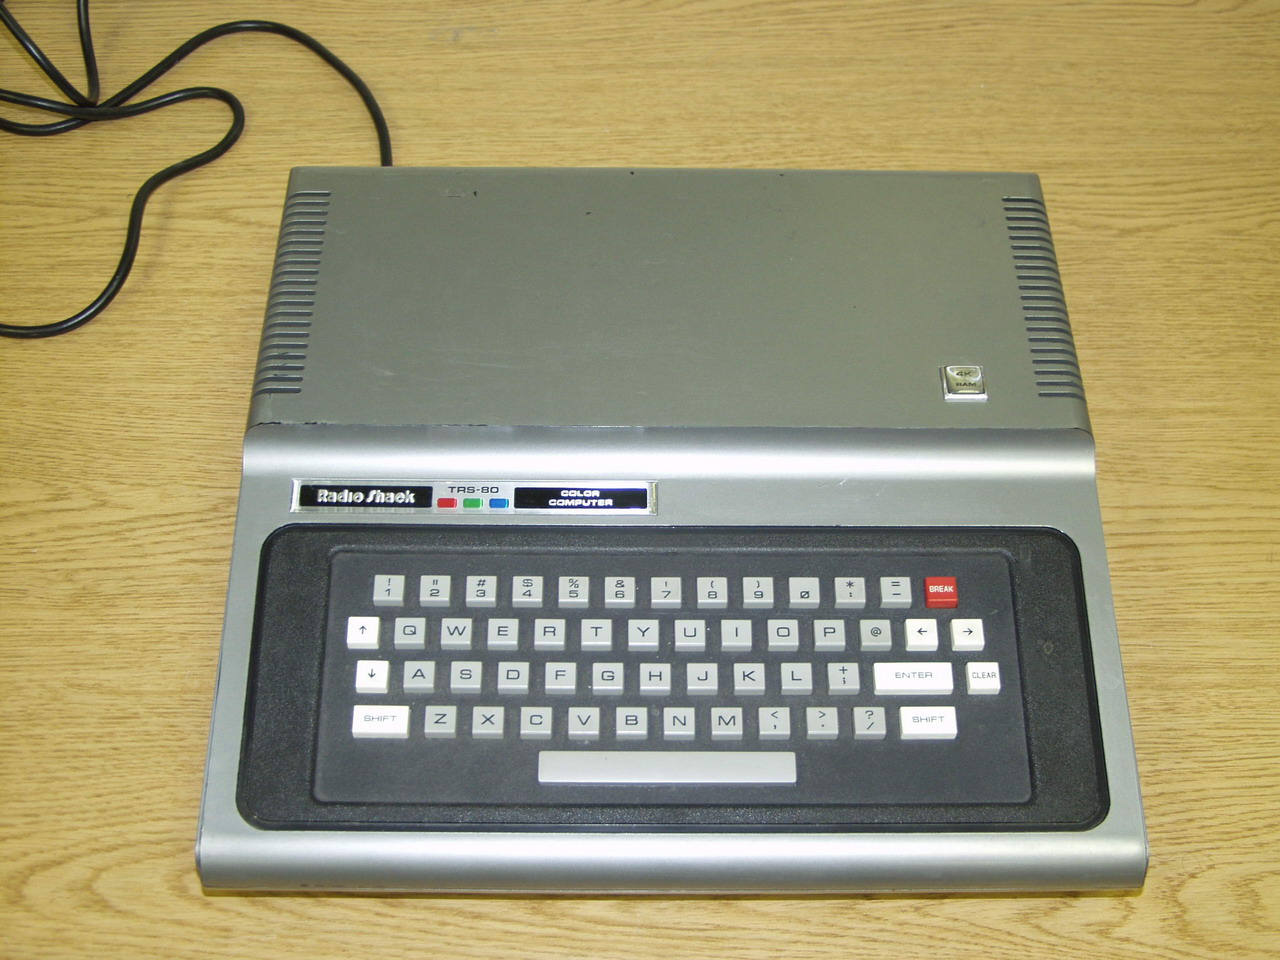 The first TRS-80 Color Computer released, model 26-3001. Features 4K RAM and Color BASIC by Microsoft in 1981. 02:55, 18 November 2005 . . Lamune (Talk)